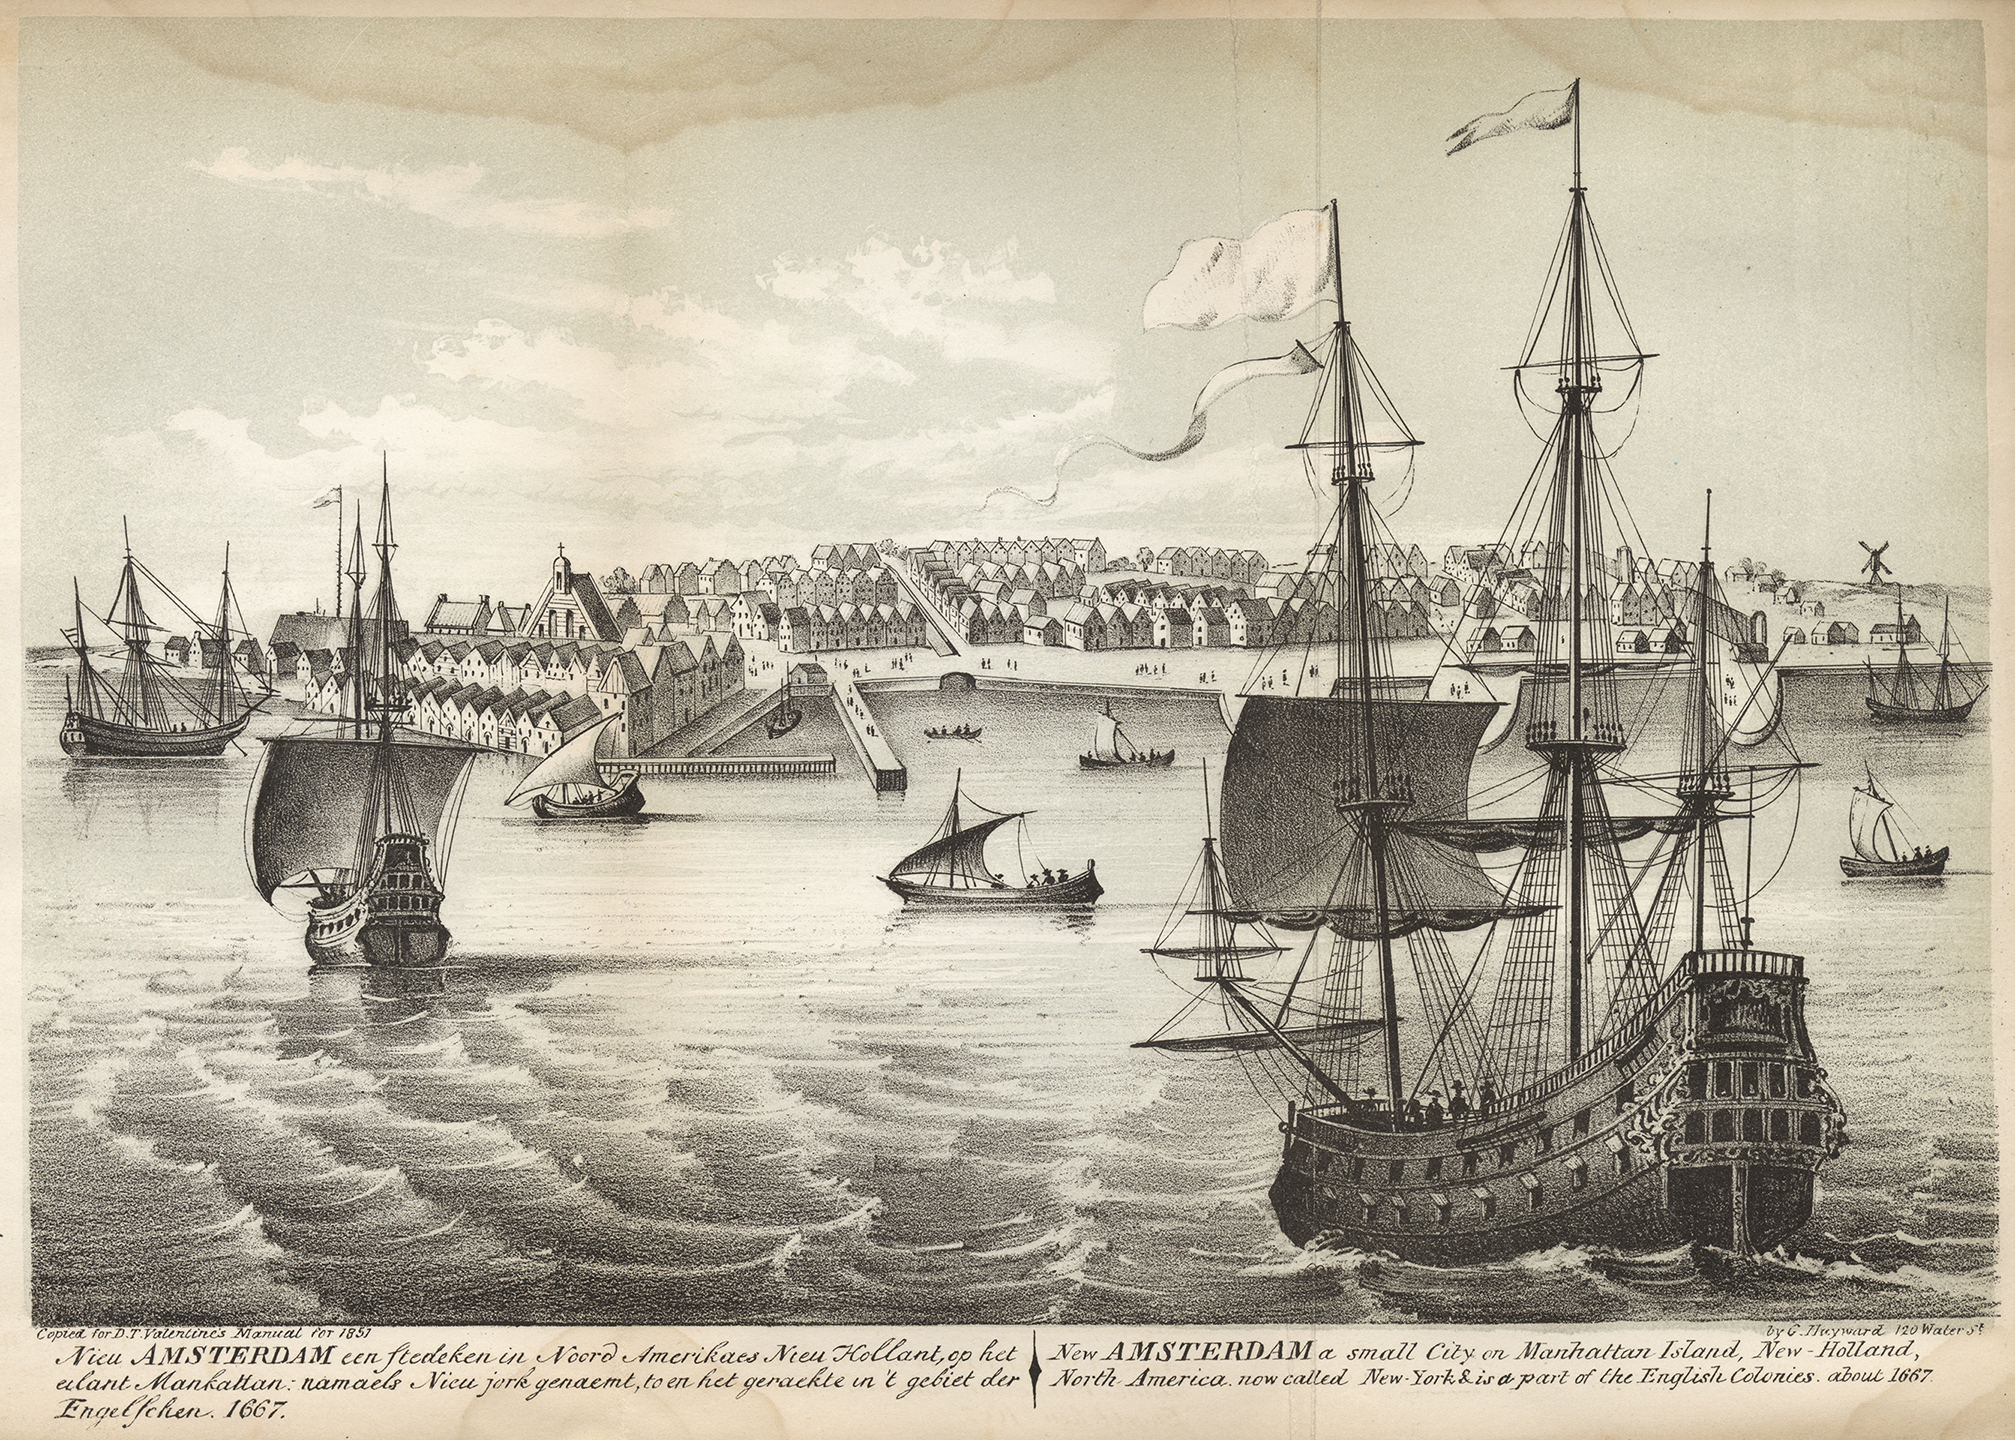 New Amsterdam, a small city on Manhattan Island, New-Holland, North America, now called New-York & is a part of the English Colonies, ca. 1667 . Copied by G. Hayward for D.T. Valentine's Manual for 1851. NYC Municipal Archives.